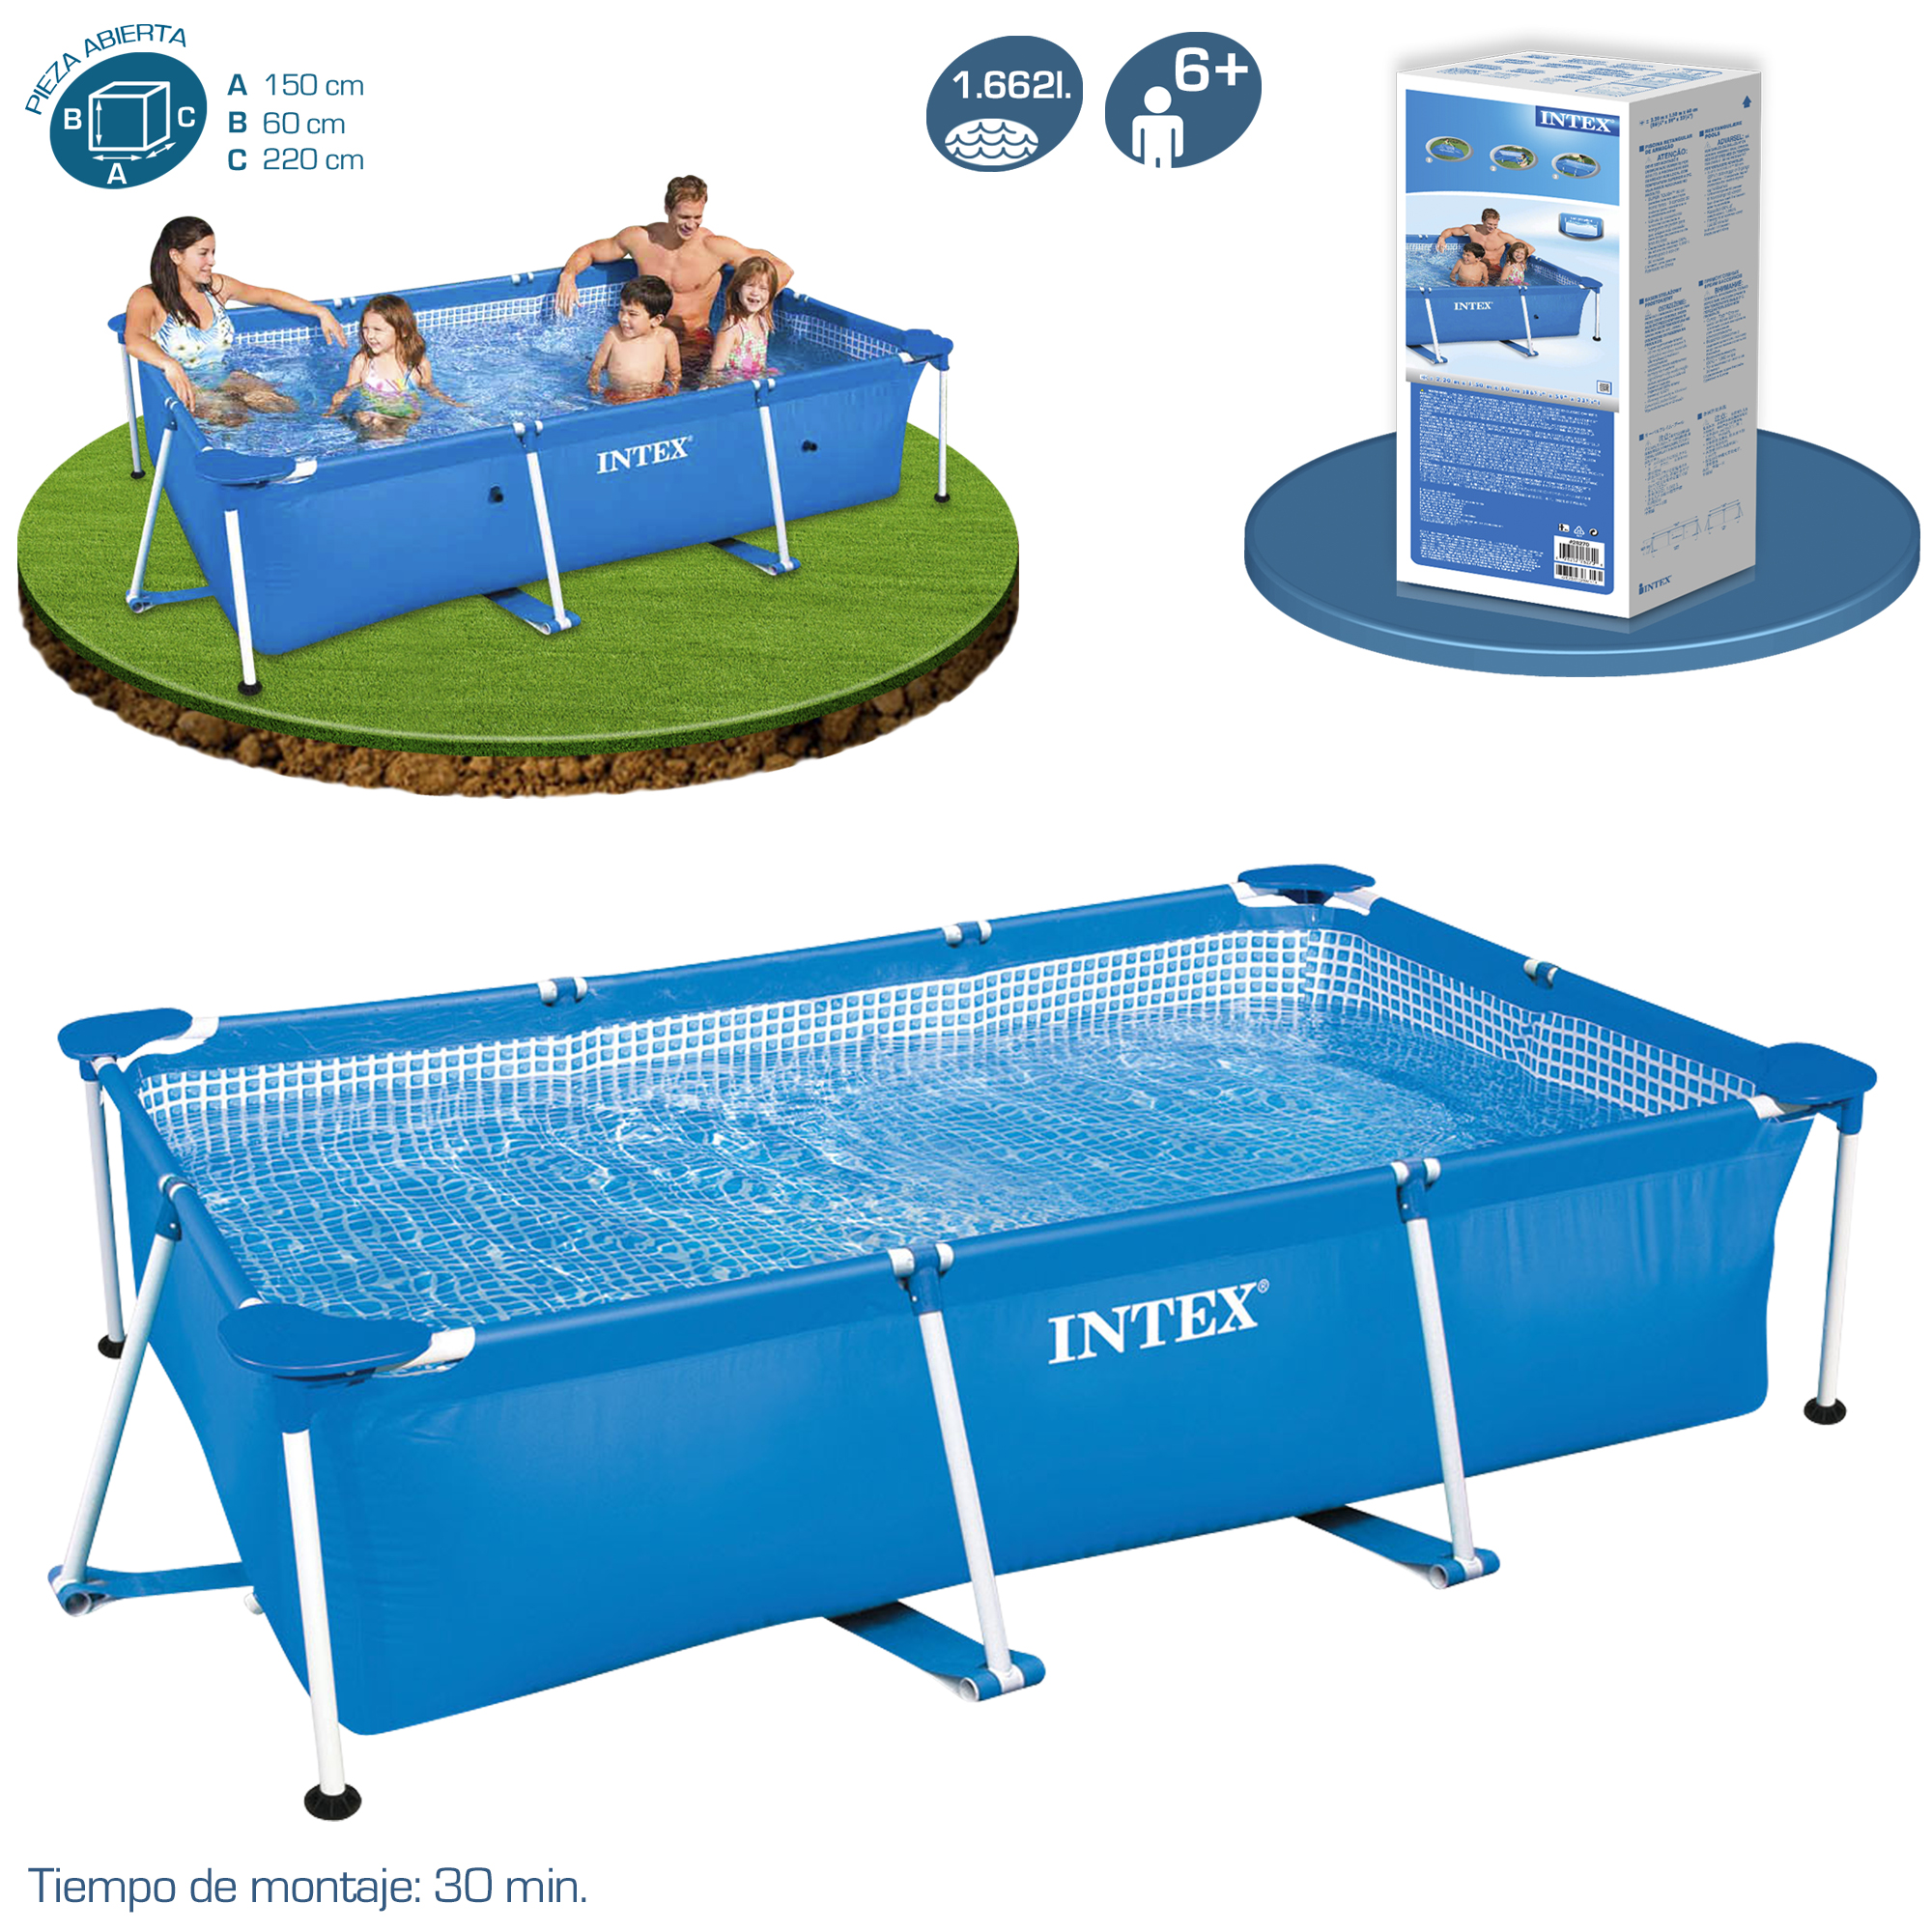 Piscina intex small rectangular frame piscinas desmontables for Piscina desmontable rectangular 3x2